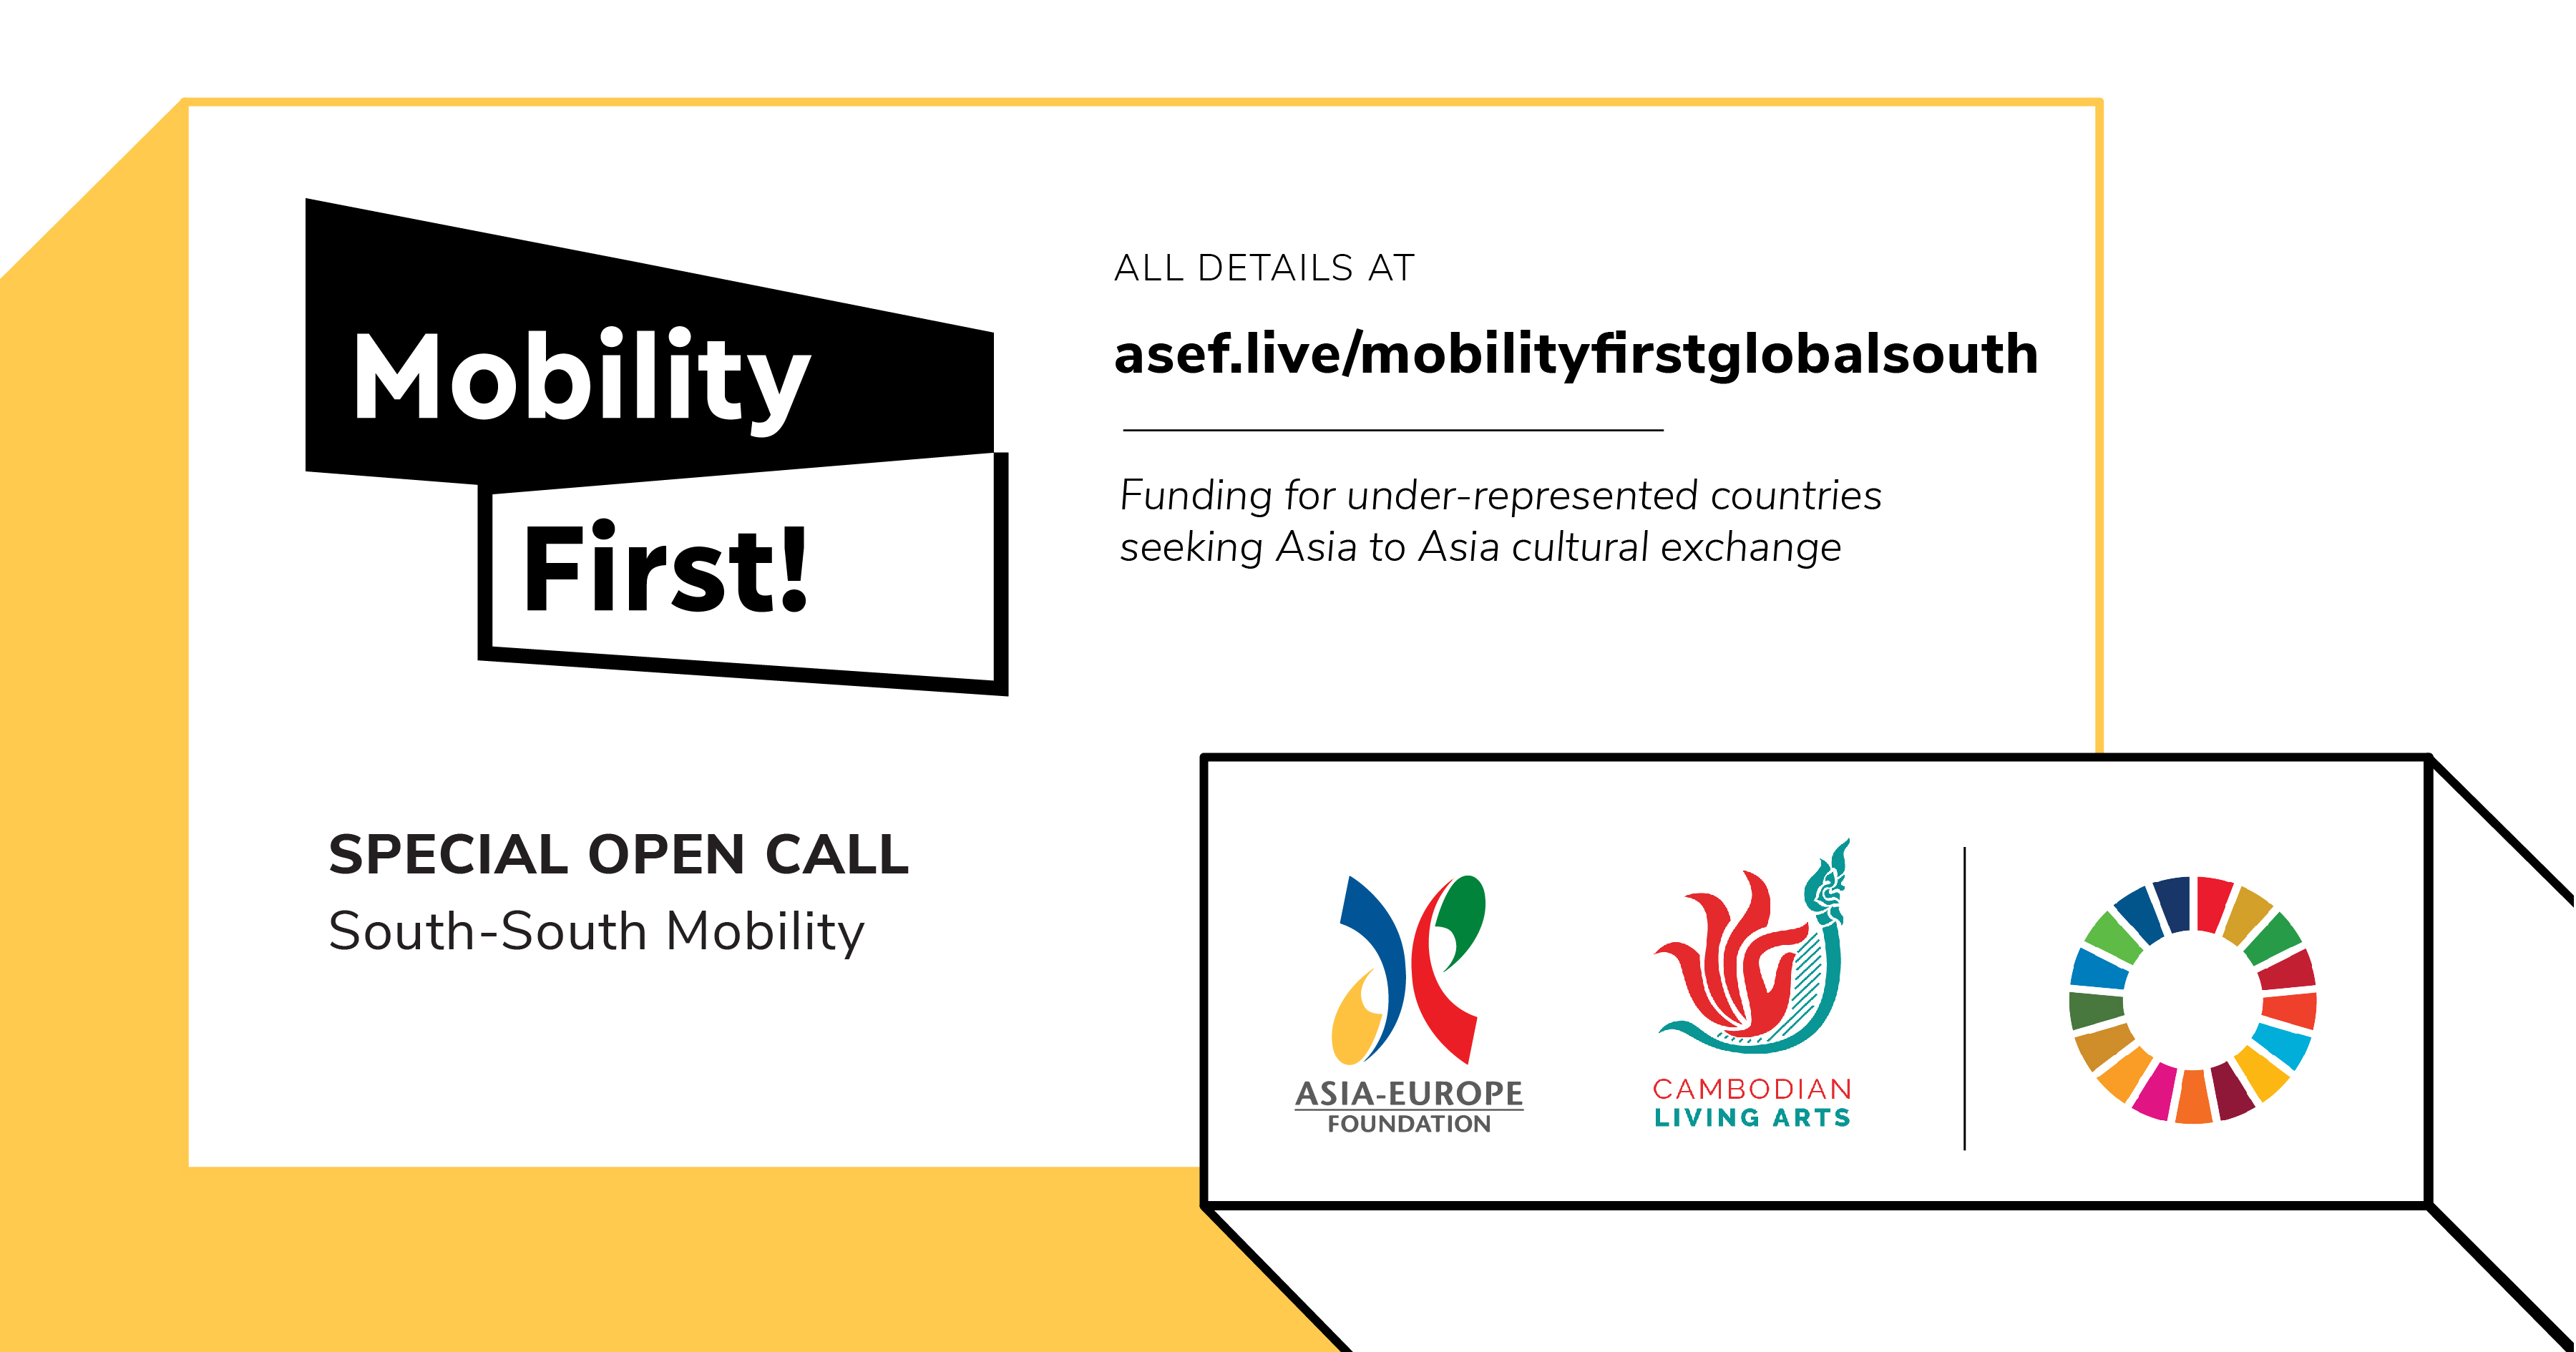 ASEF CLA joint mobility call